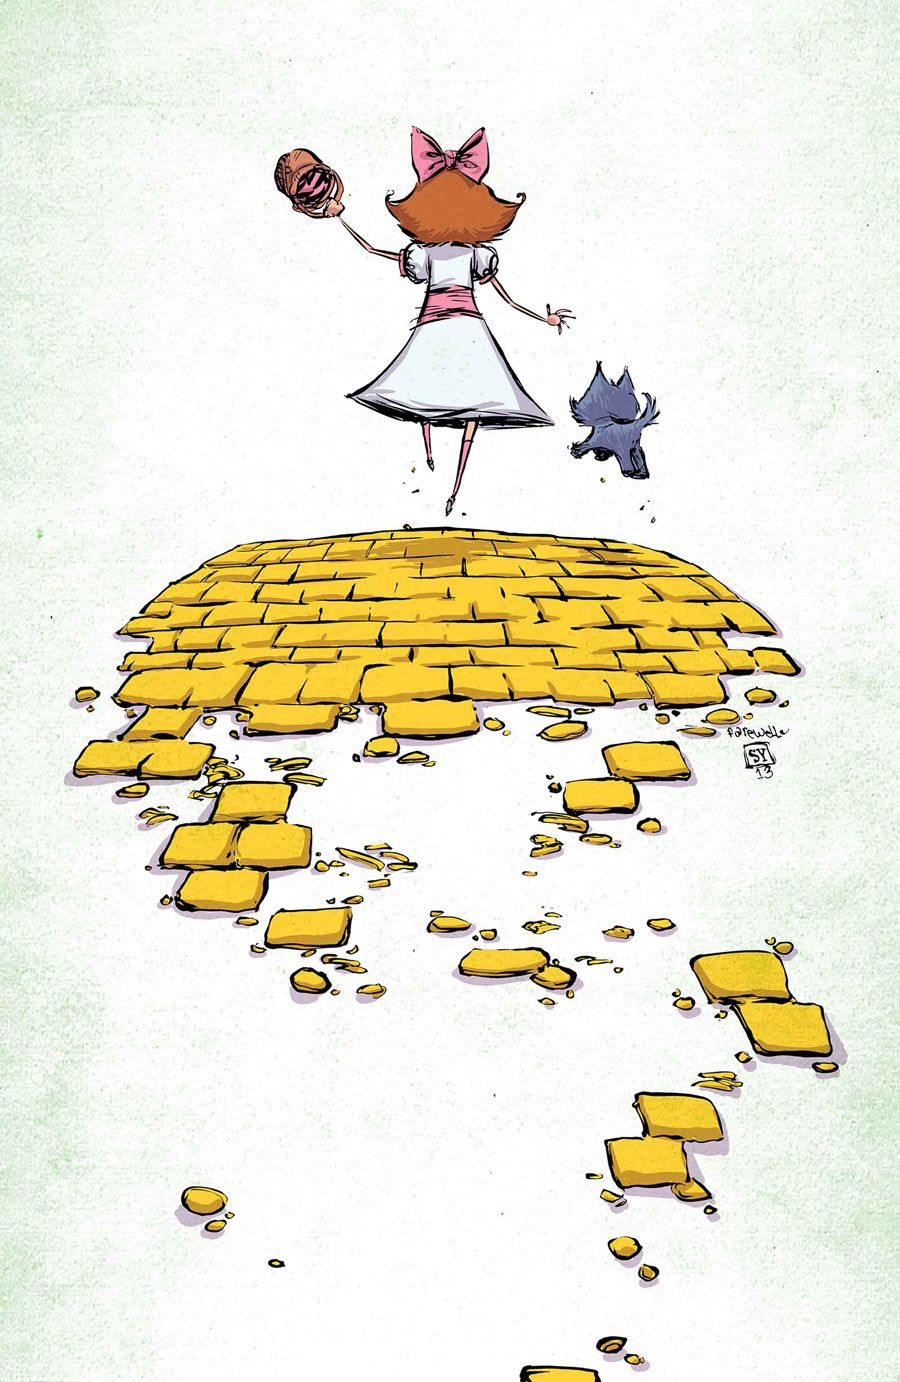 The Emerald City of OZ  by Skottie Young